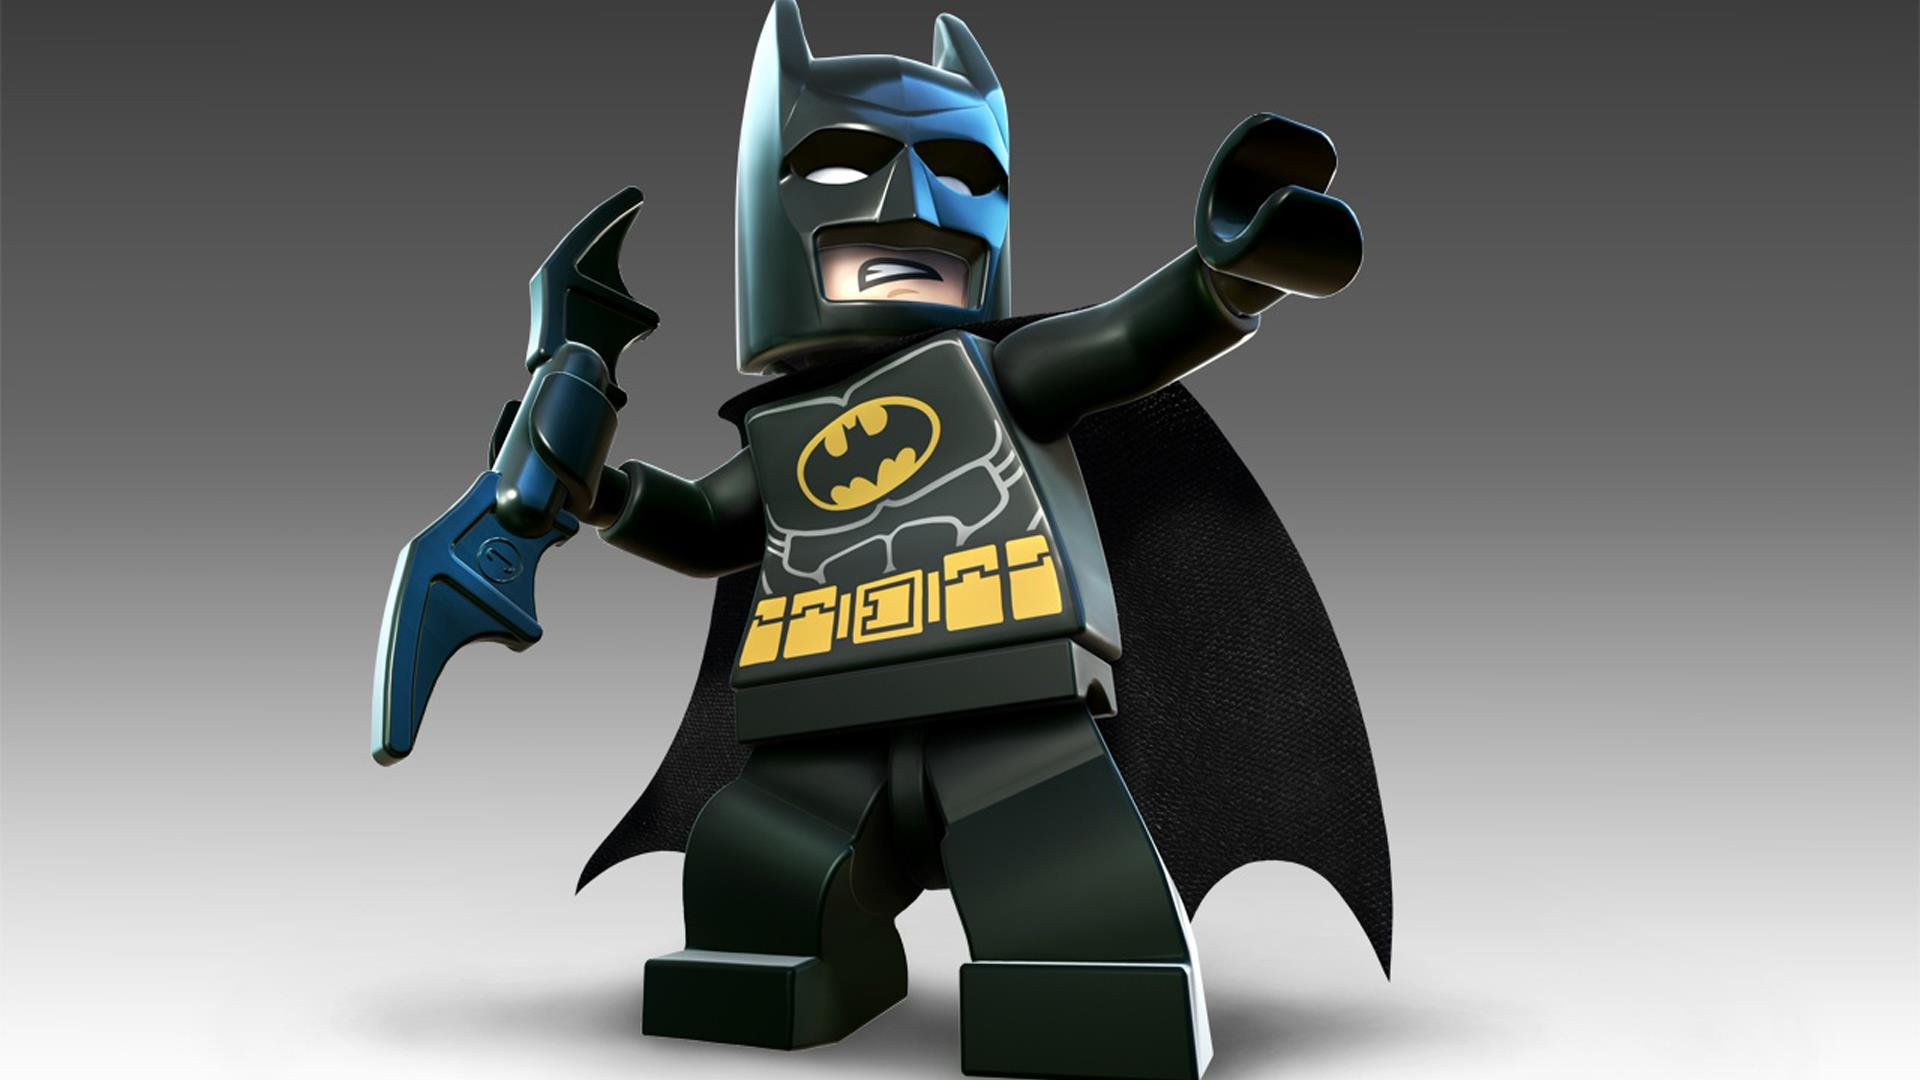 Killzone Shadow Fall Full Hd Wallpaper Lego Batman 2 Dc Super Heroes Wallpapers Pictures Images